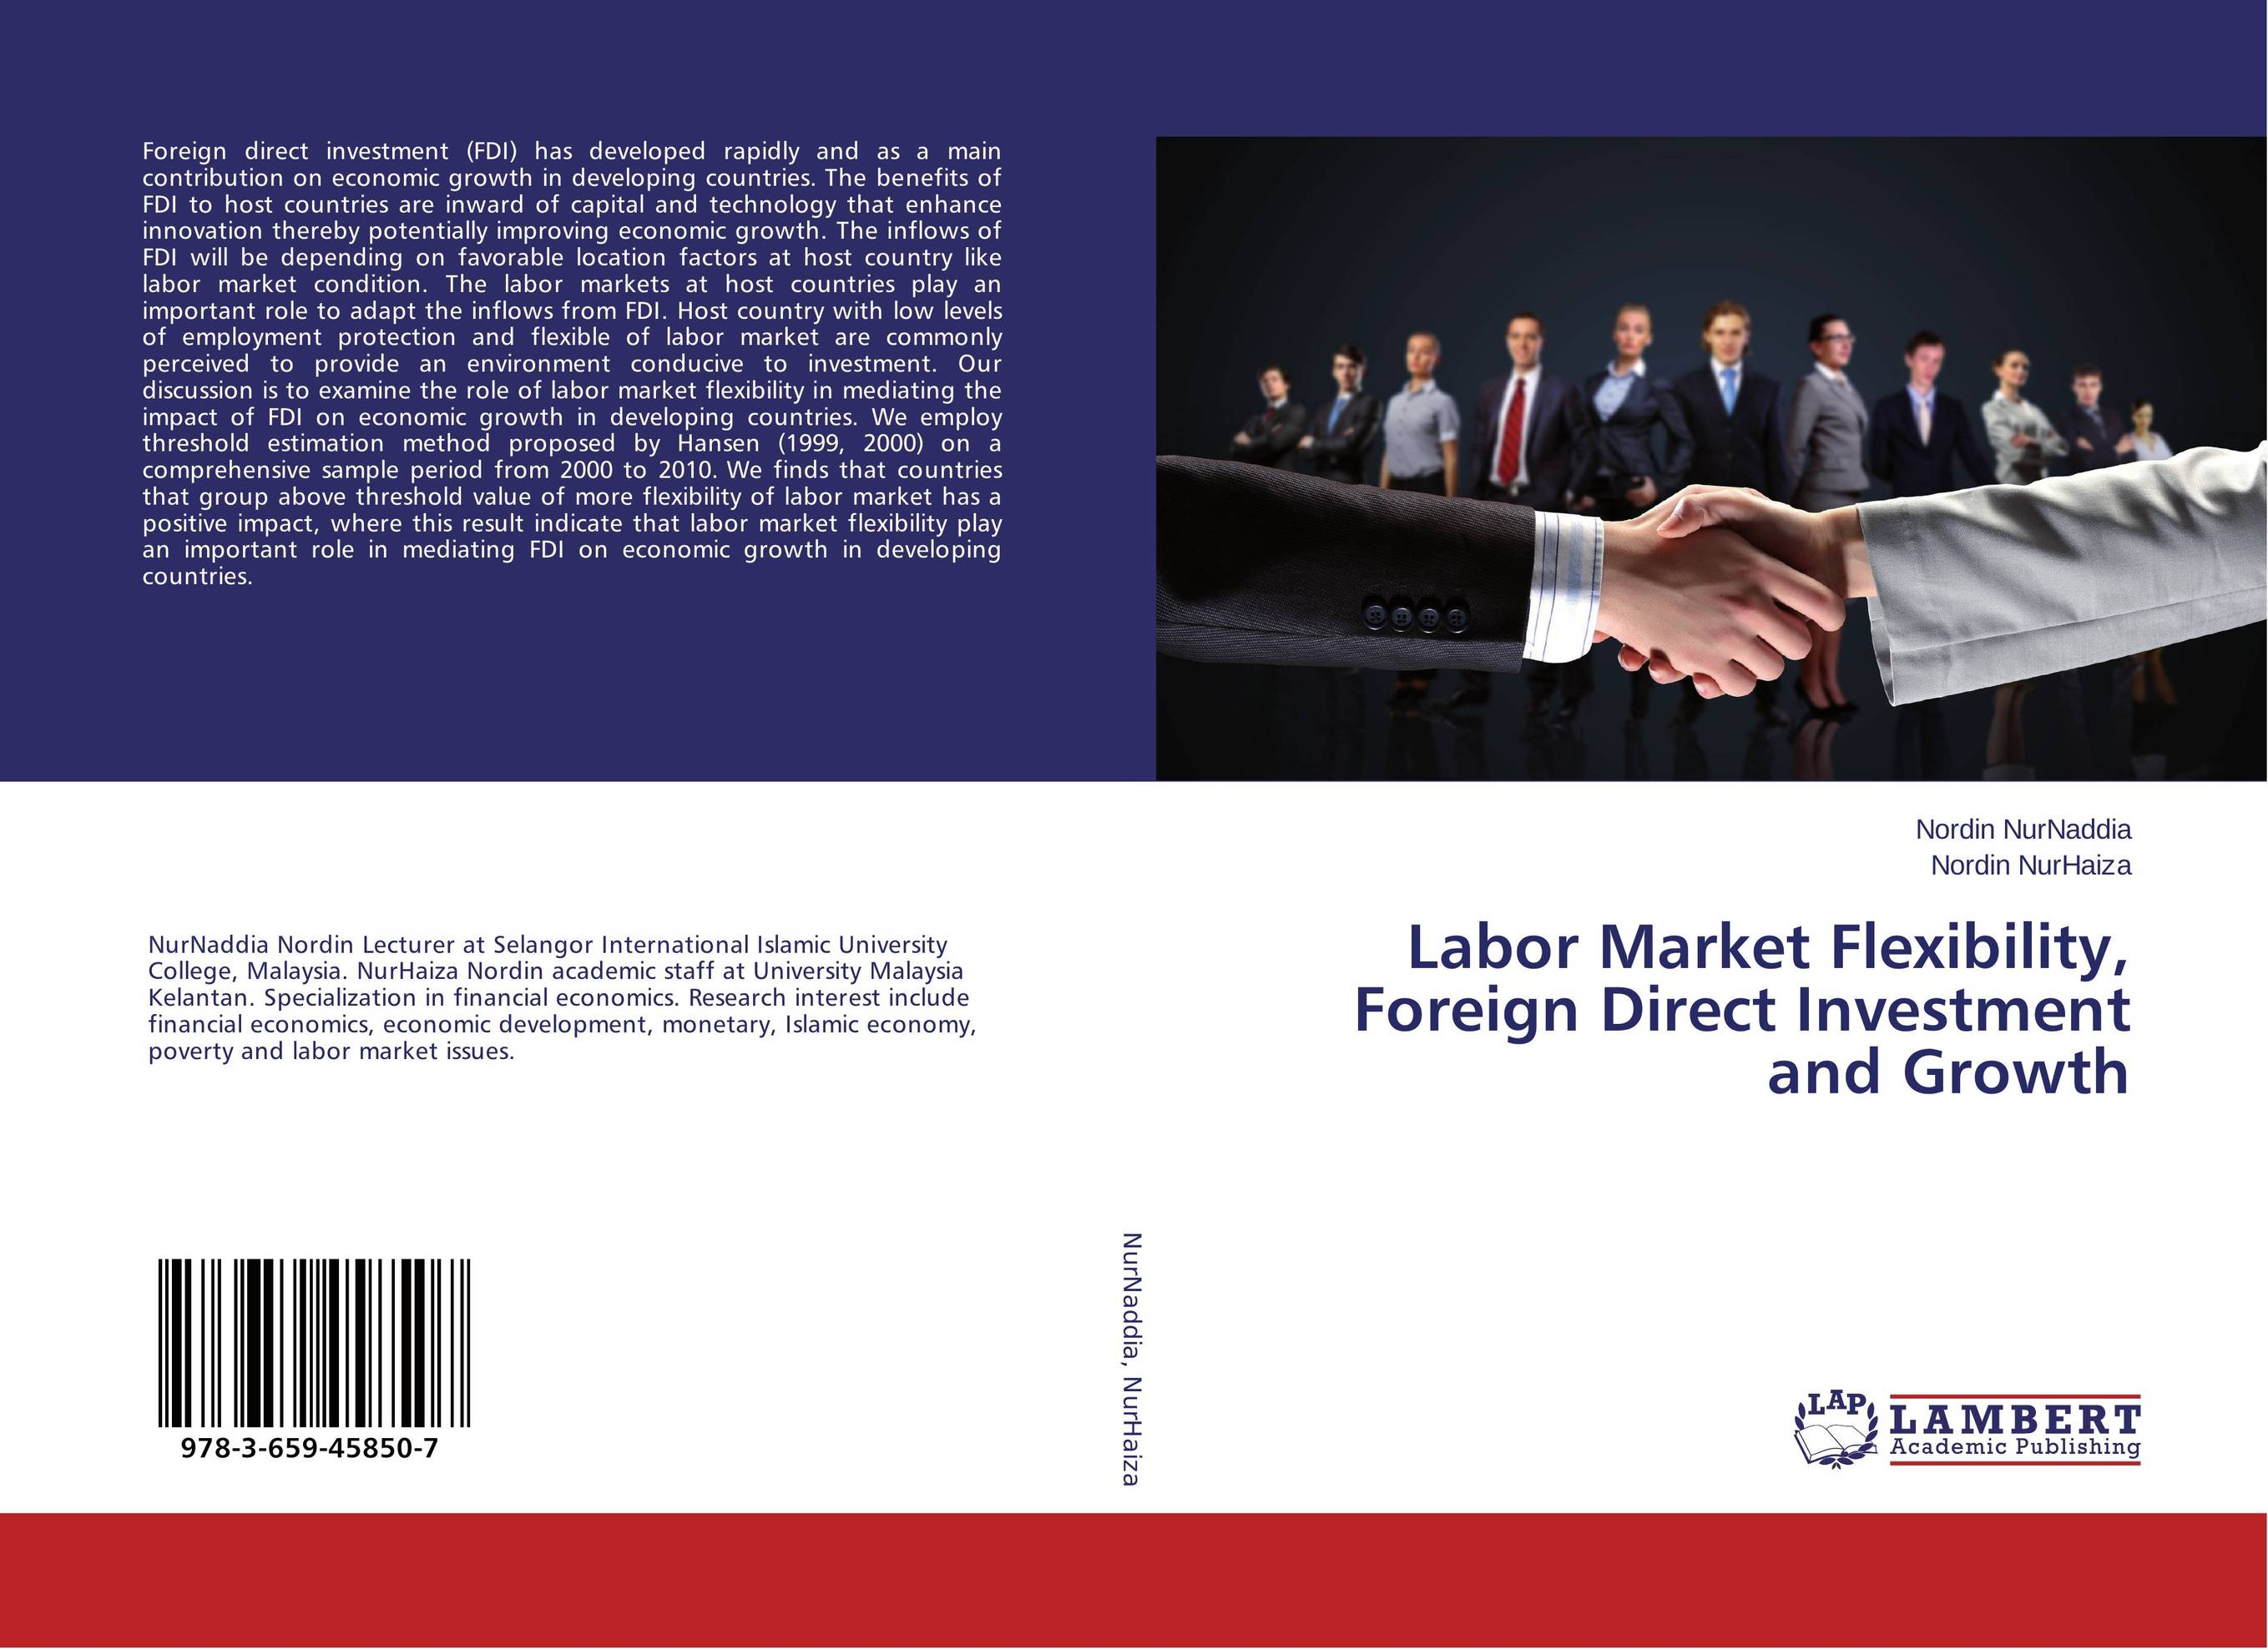 Labor Market Flexibility, Foreign Direct Investment and Growth